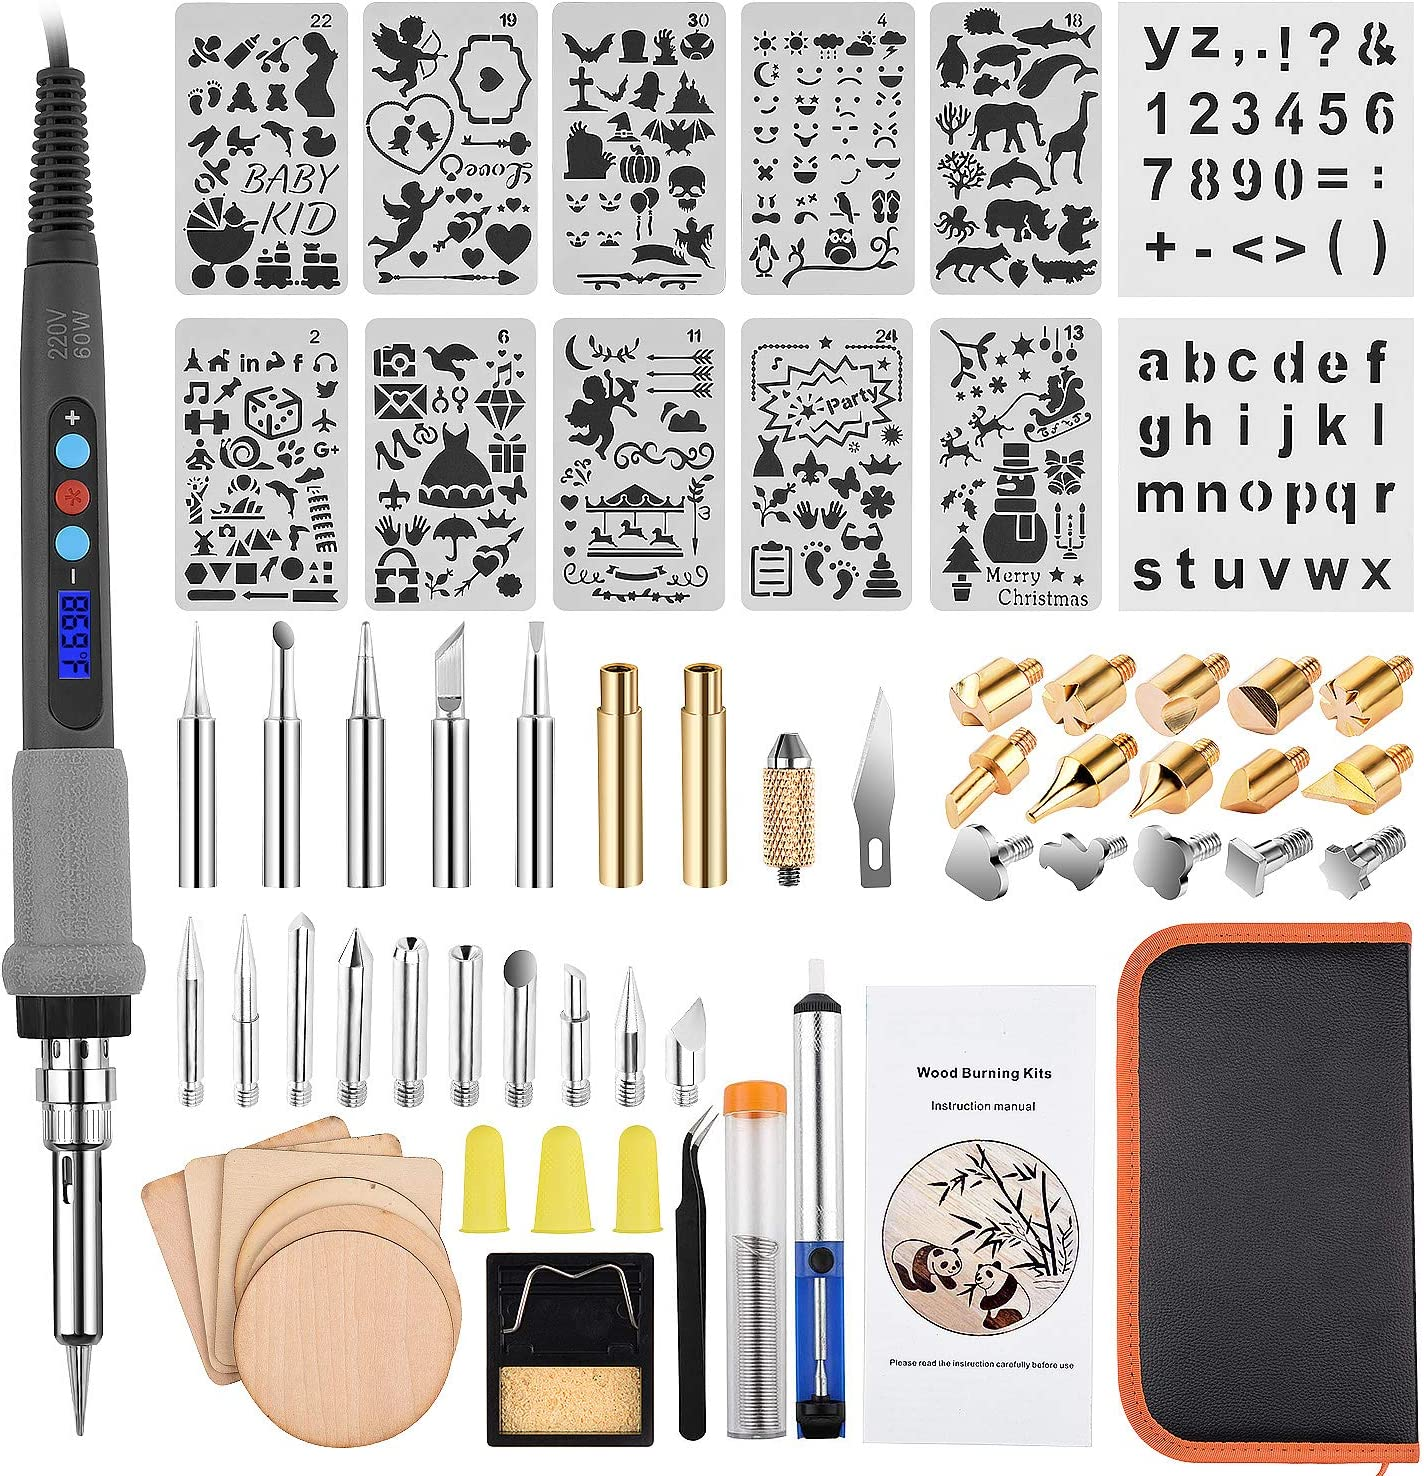 Amazon Com 62pcs Lcd Wood Burning Kit Tbjsm Upgraded Woodburning Tool Set With Lcd Display Professional Adjustable Temperature Pyrography Pen Wood Burner Diy Craft Tools For Embossing Carving Soldering Tips